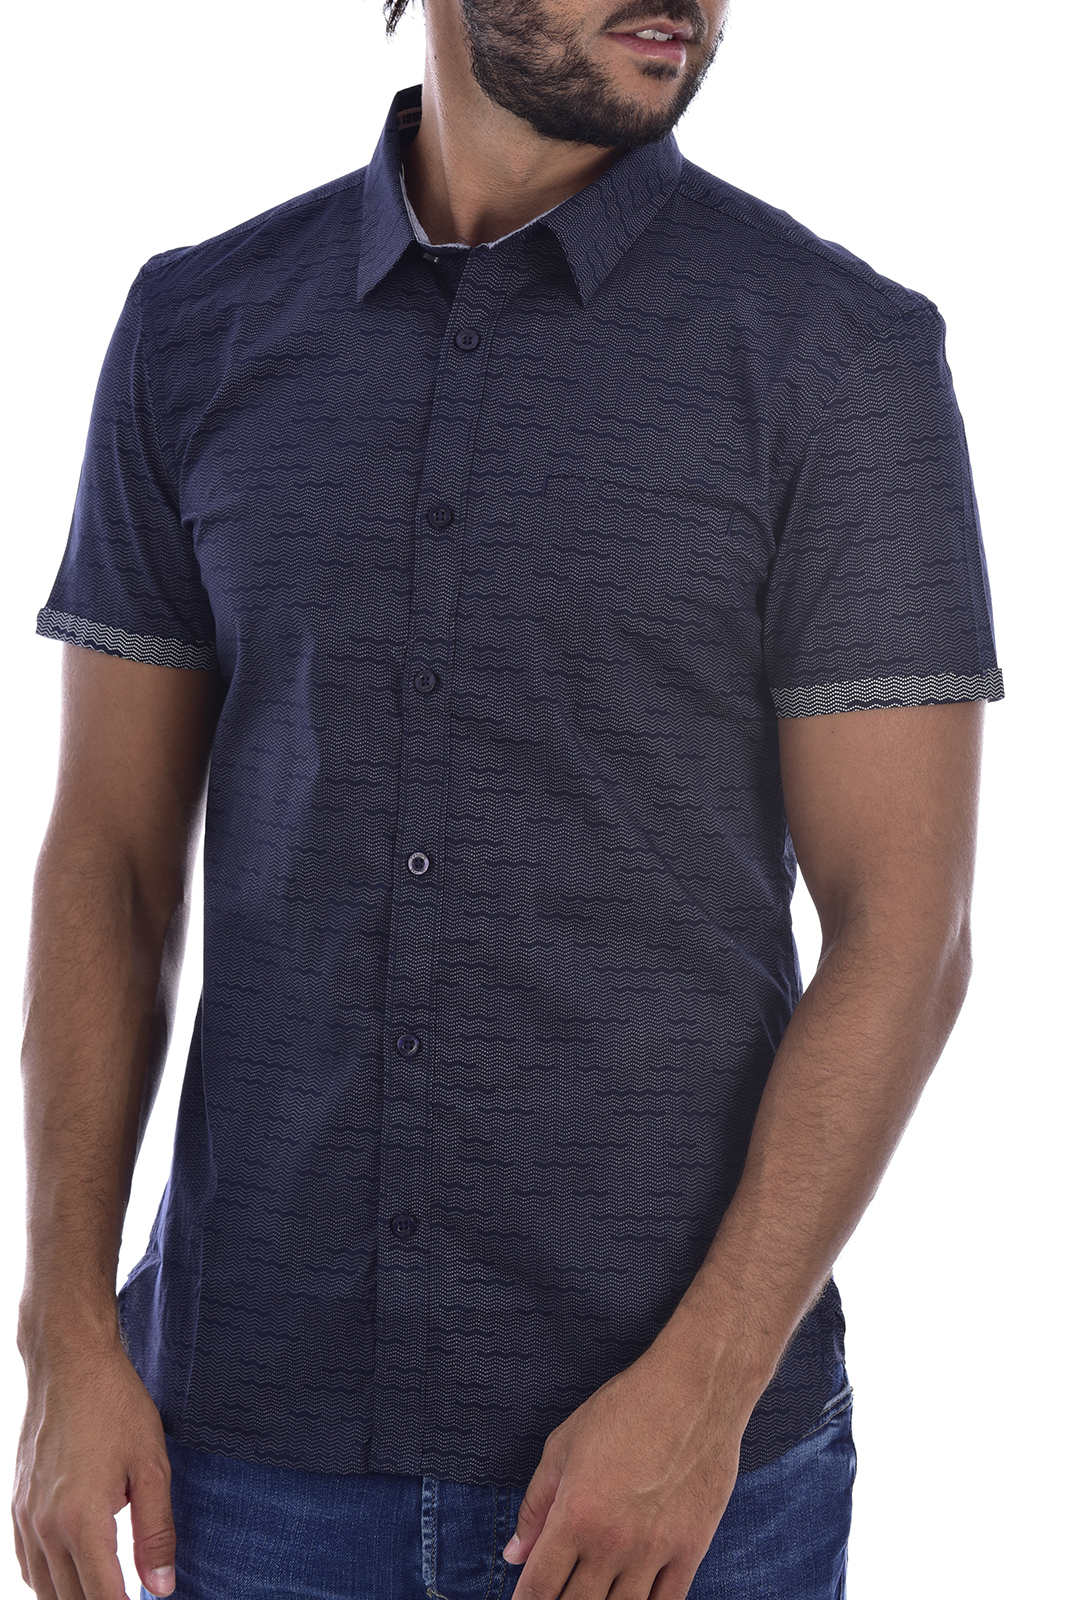 Chemises manches courtes  Teddy smith CUT MC 303JC TOTAL NAVY